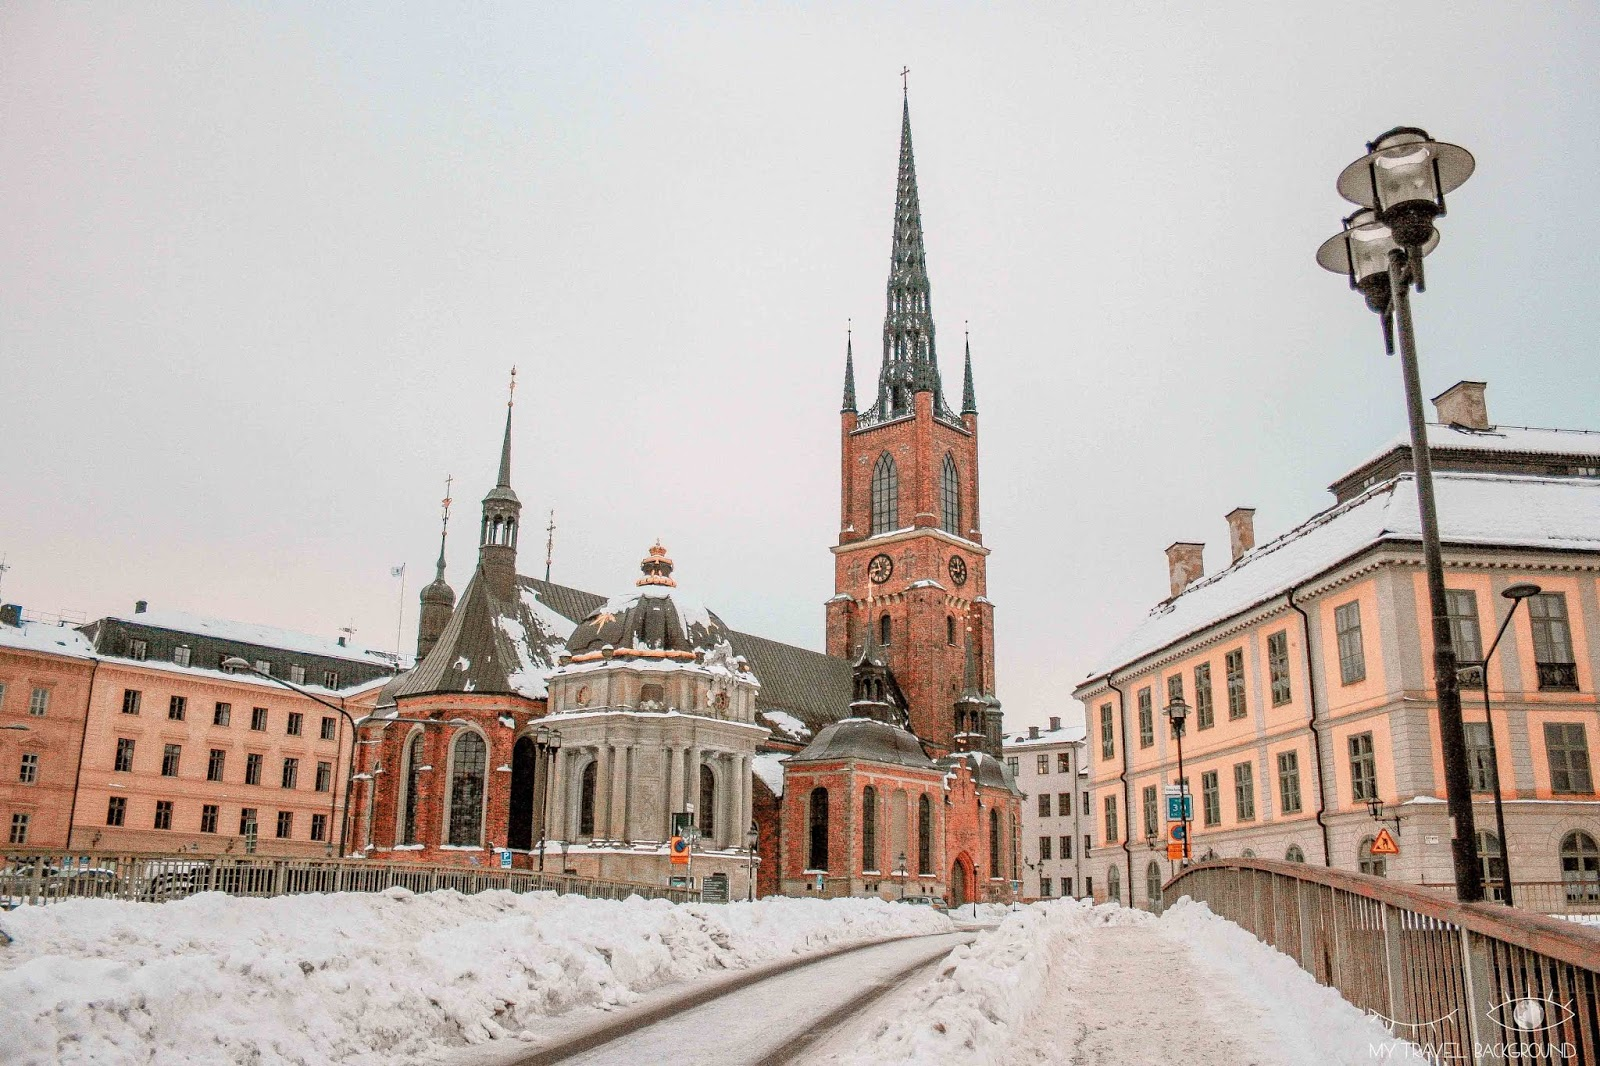 My Travel Background : Visiter Stockholm, mes immanquables - Eglise de Riddarholmen